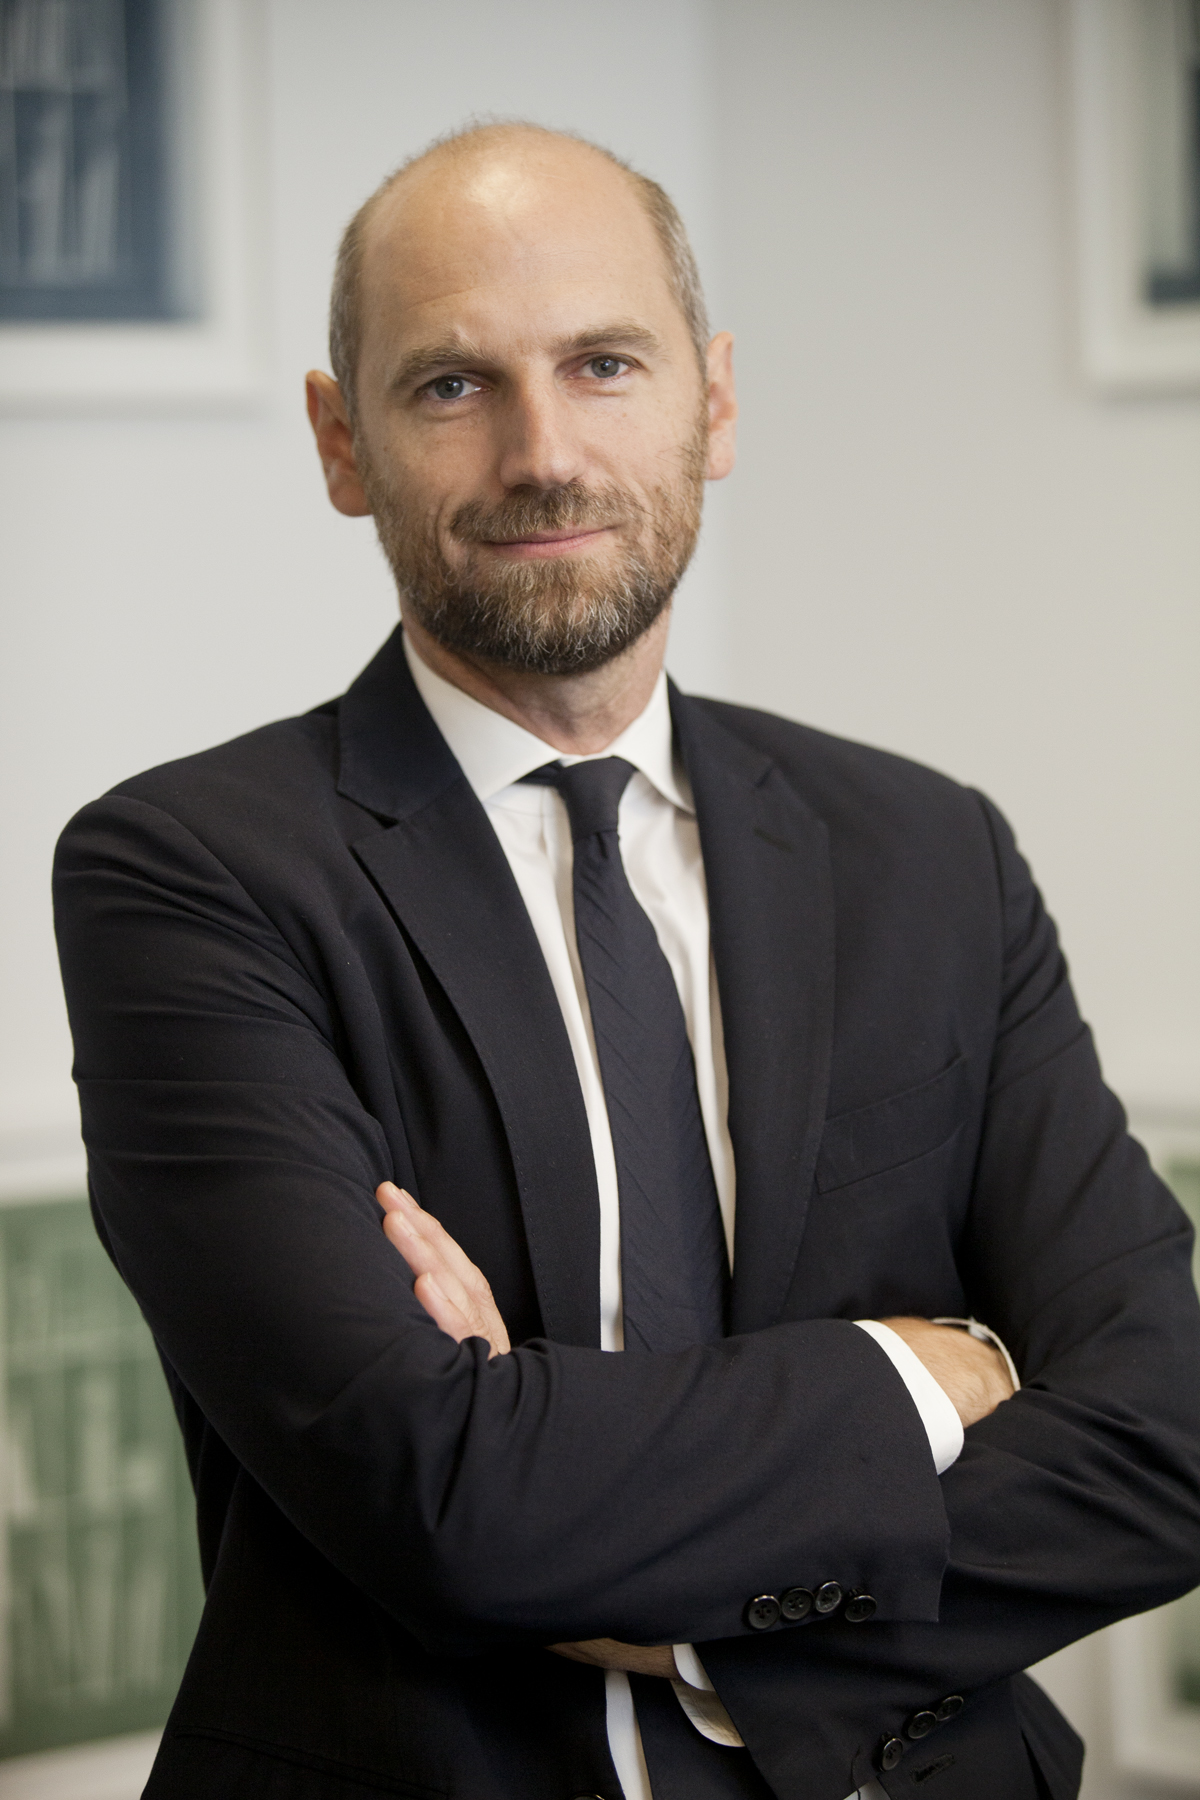 SculptureCenter Appoints Christian Rattemeyer, Longtime MoMA Curator, as Director